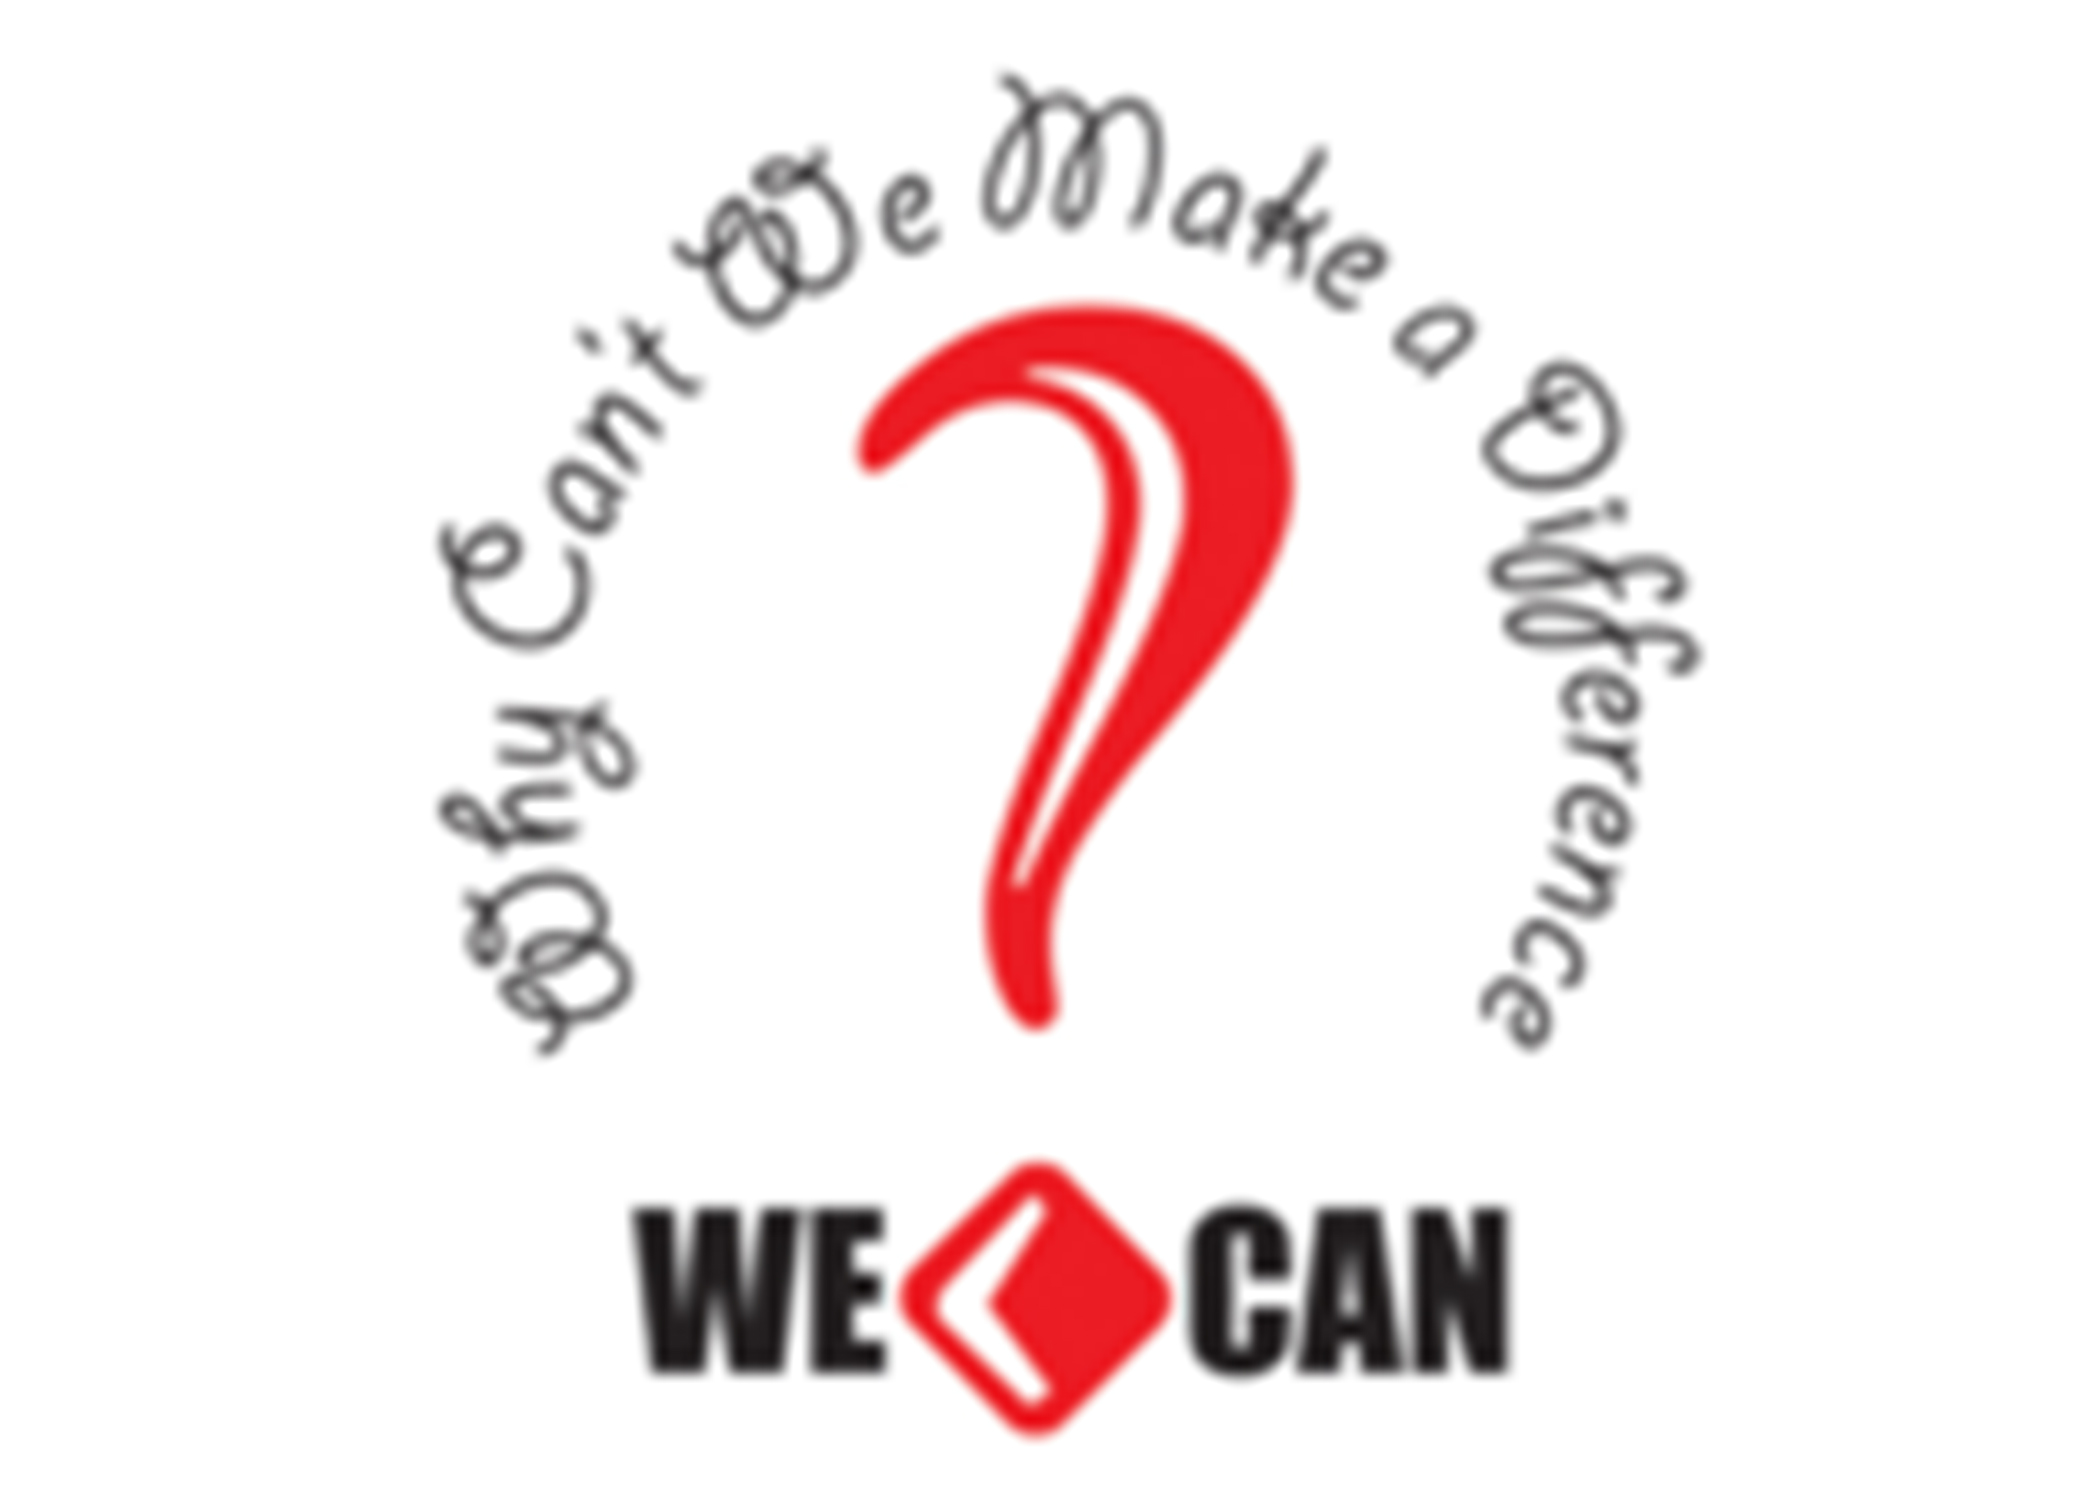 Why Can't We Make a Difference Foundation